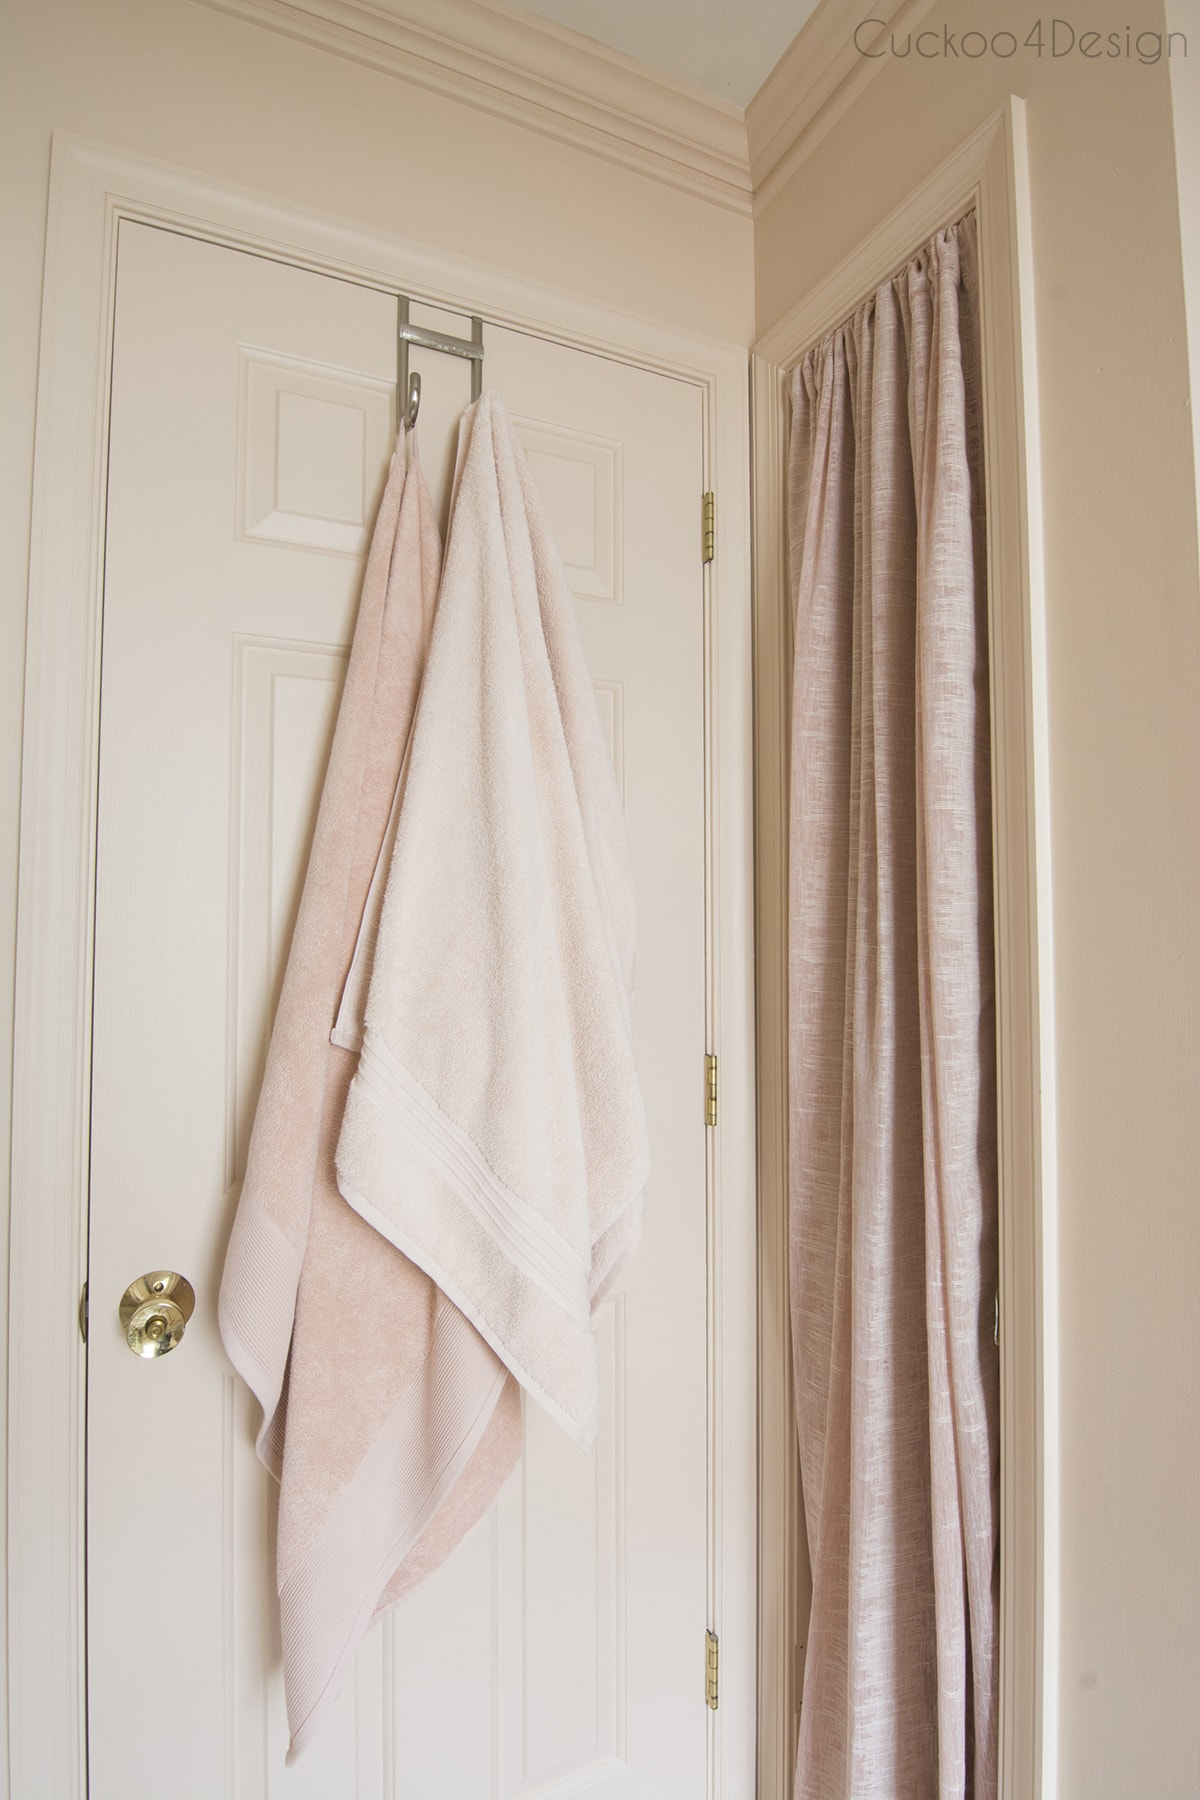 blush towels and curtains in blush budget bathroom remodel